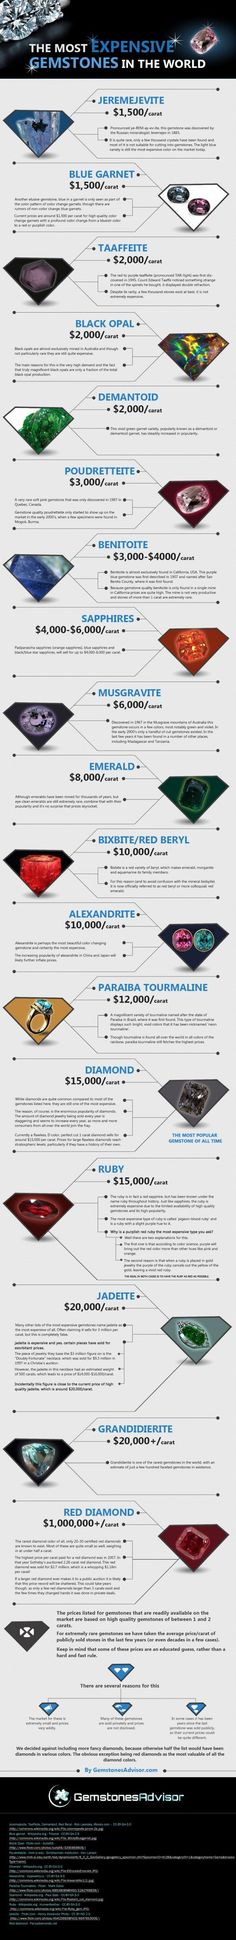 The most expensive gemstones in the world [INFOGRAPHIC]